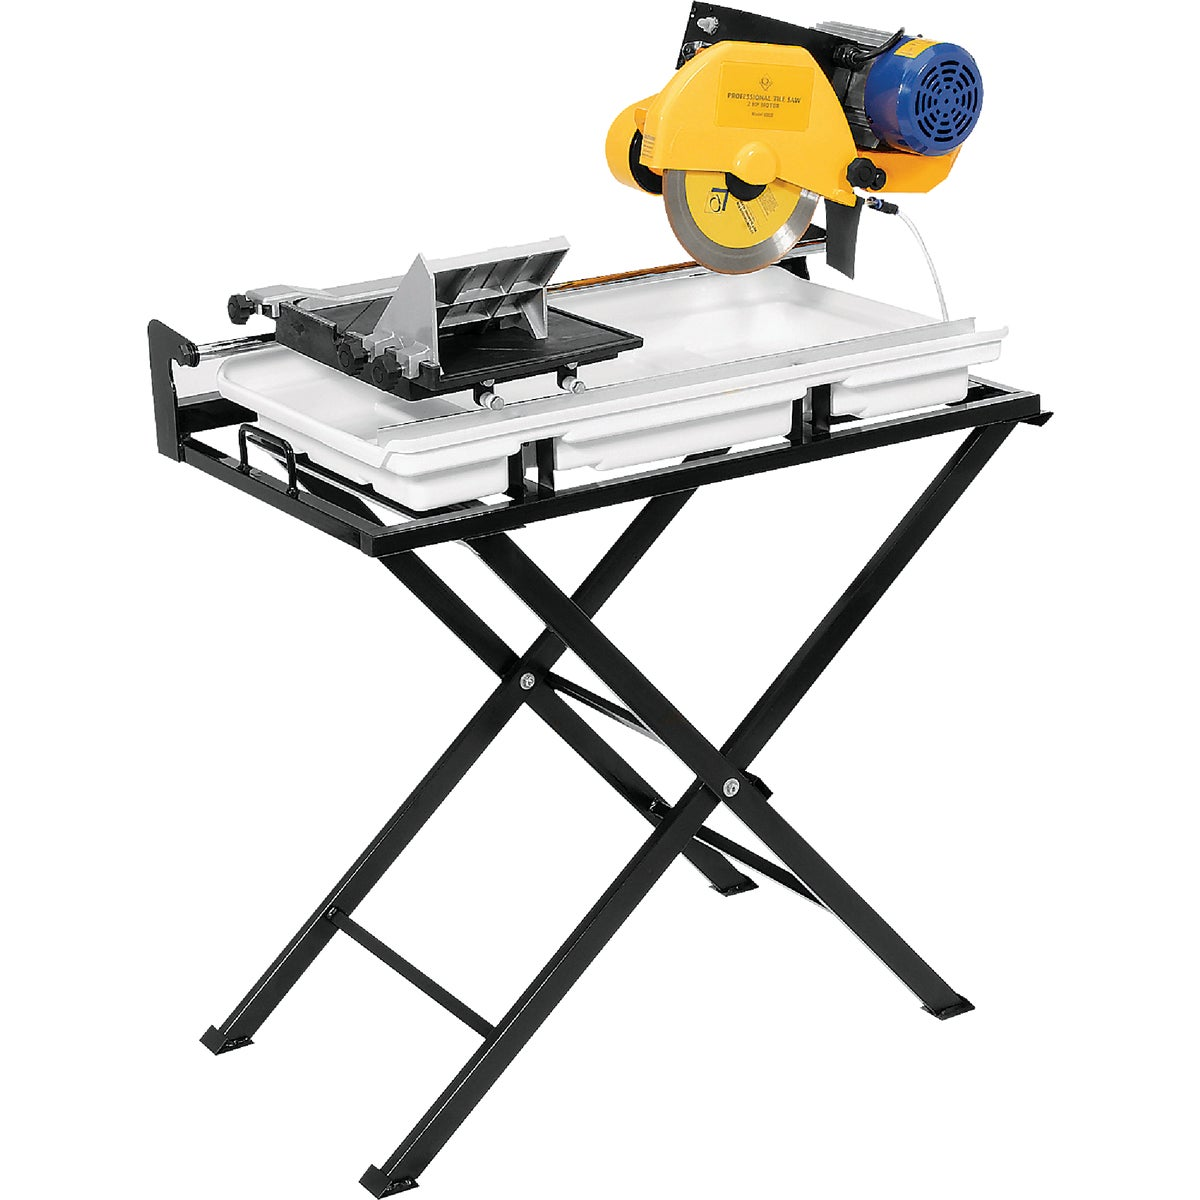 DUAL SPEED TILE SAW